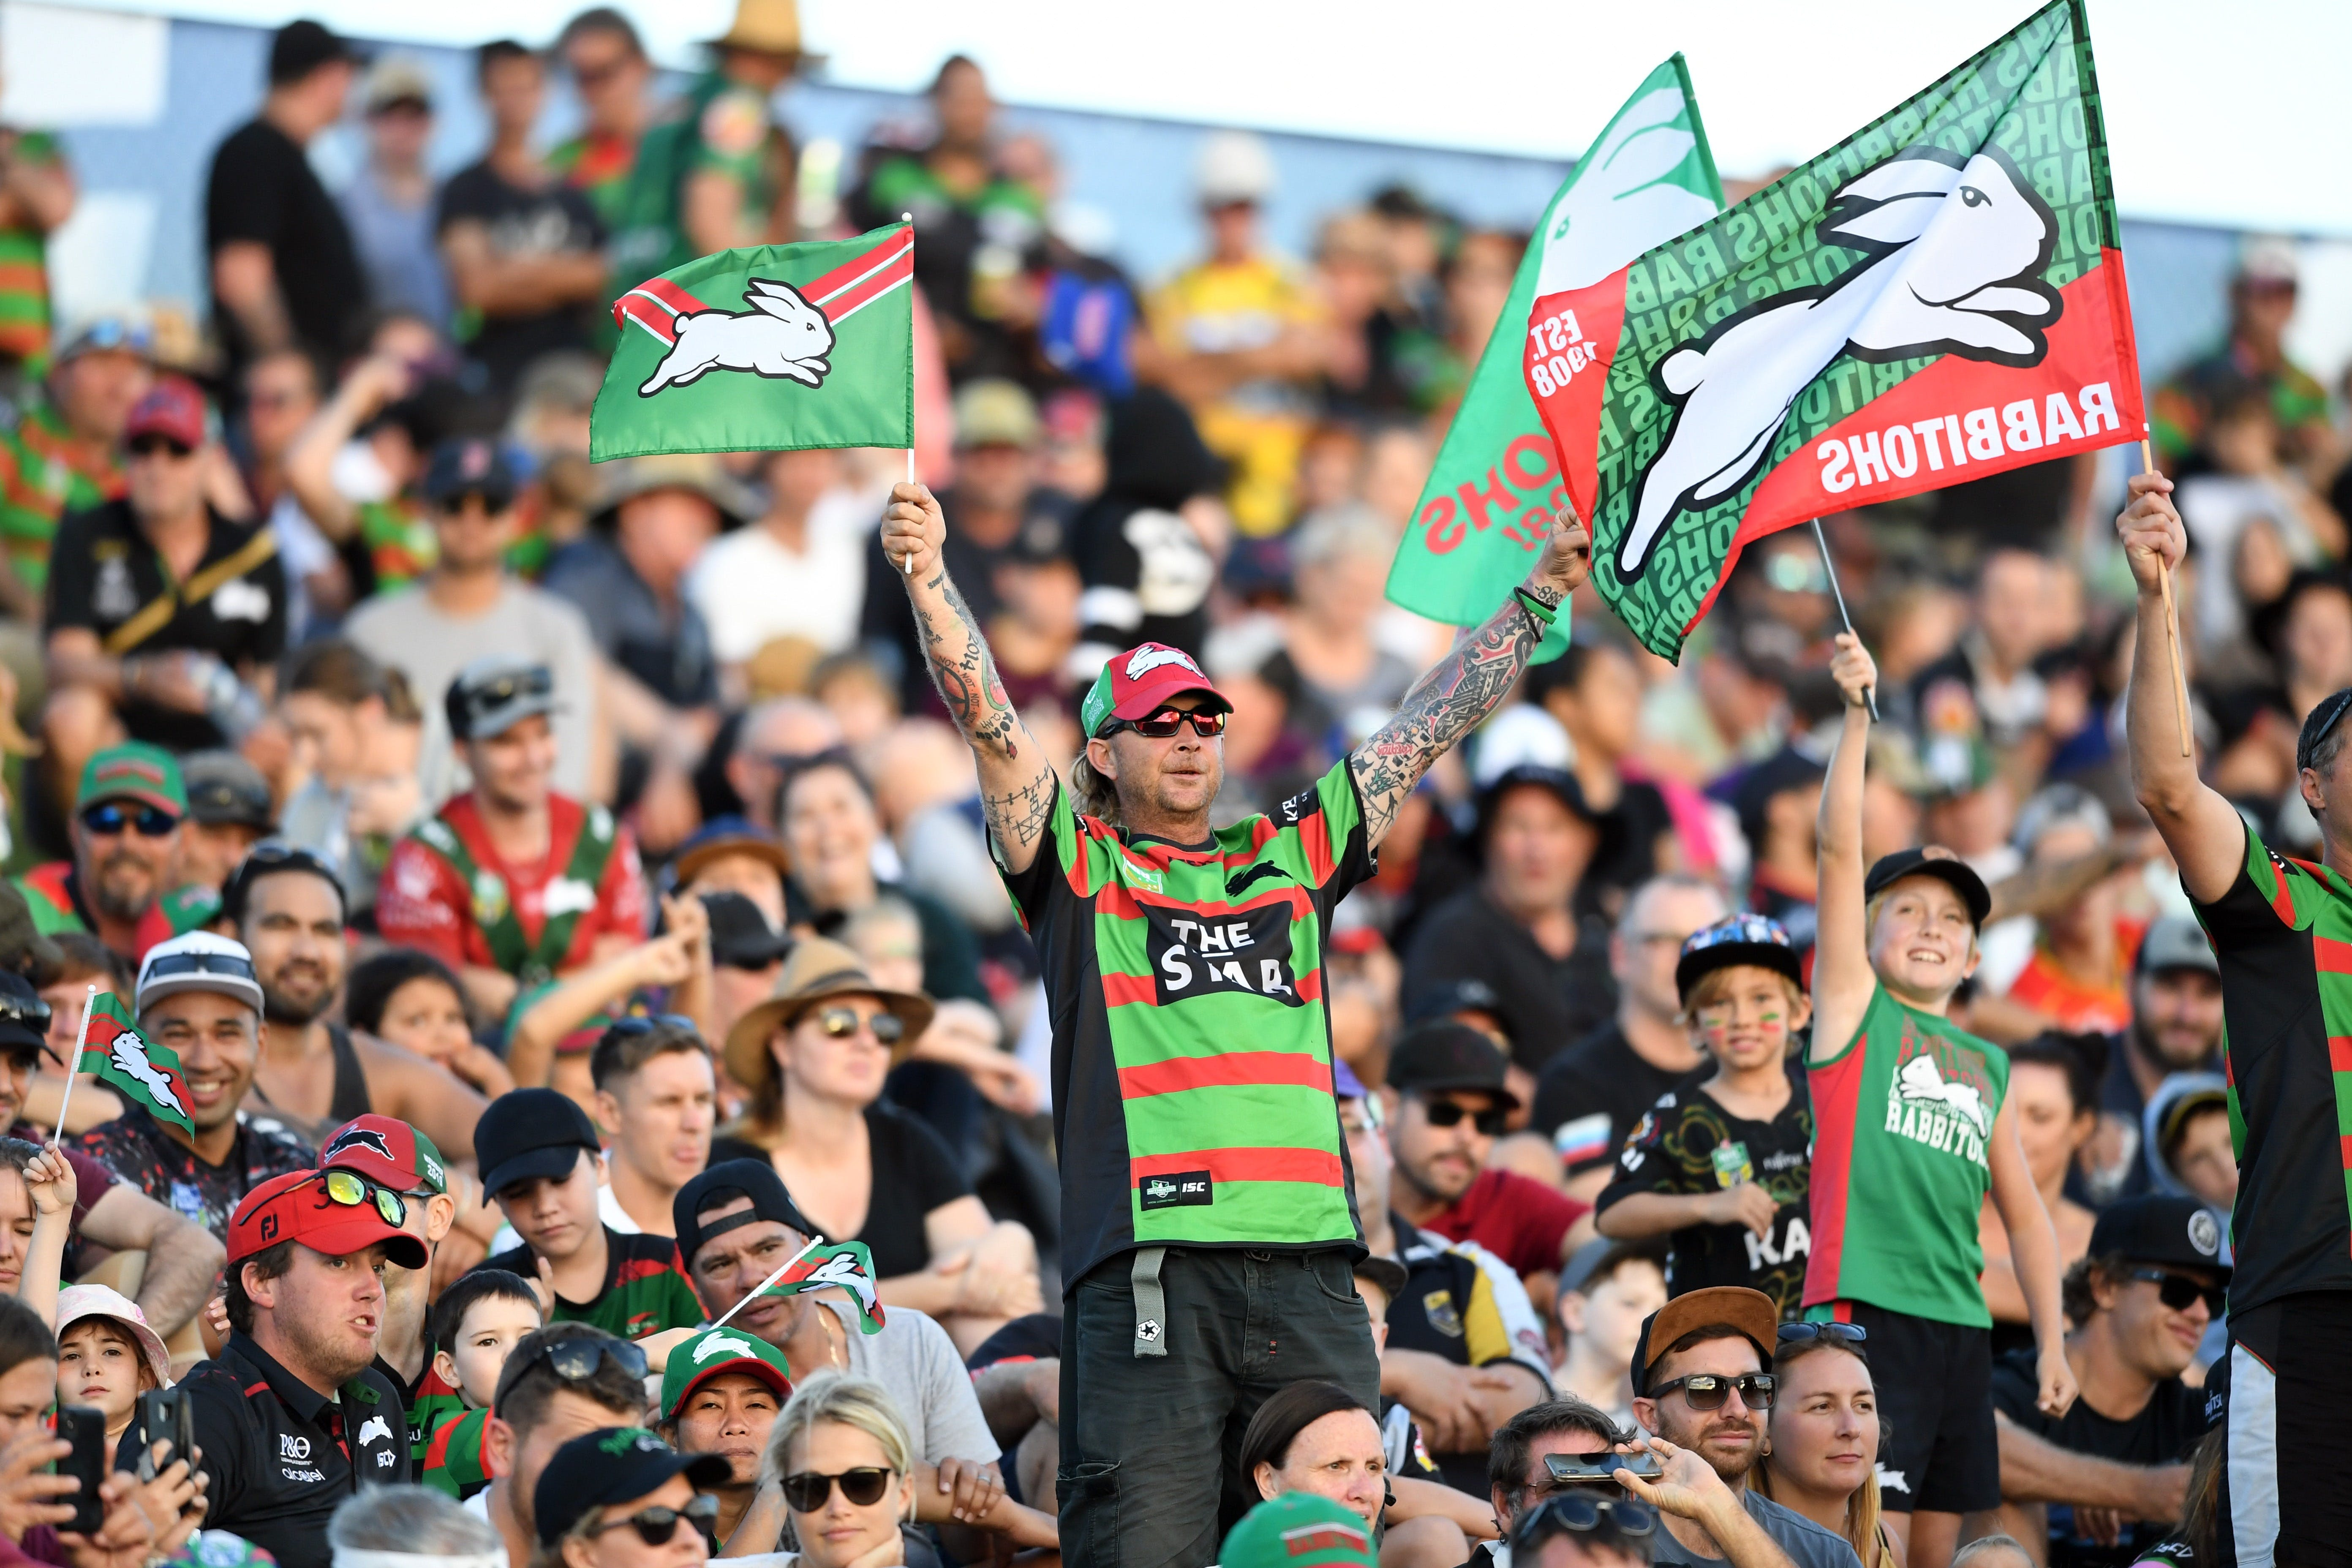 South Sydney Rabbitohs versus New Zealand Warriors Logo and Images